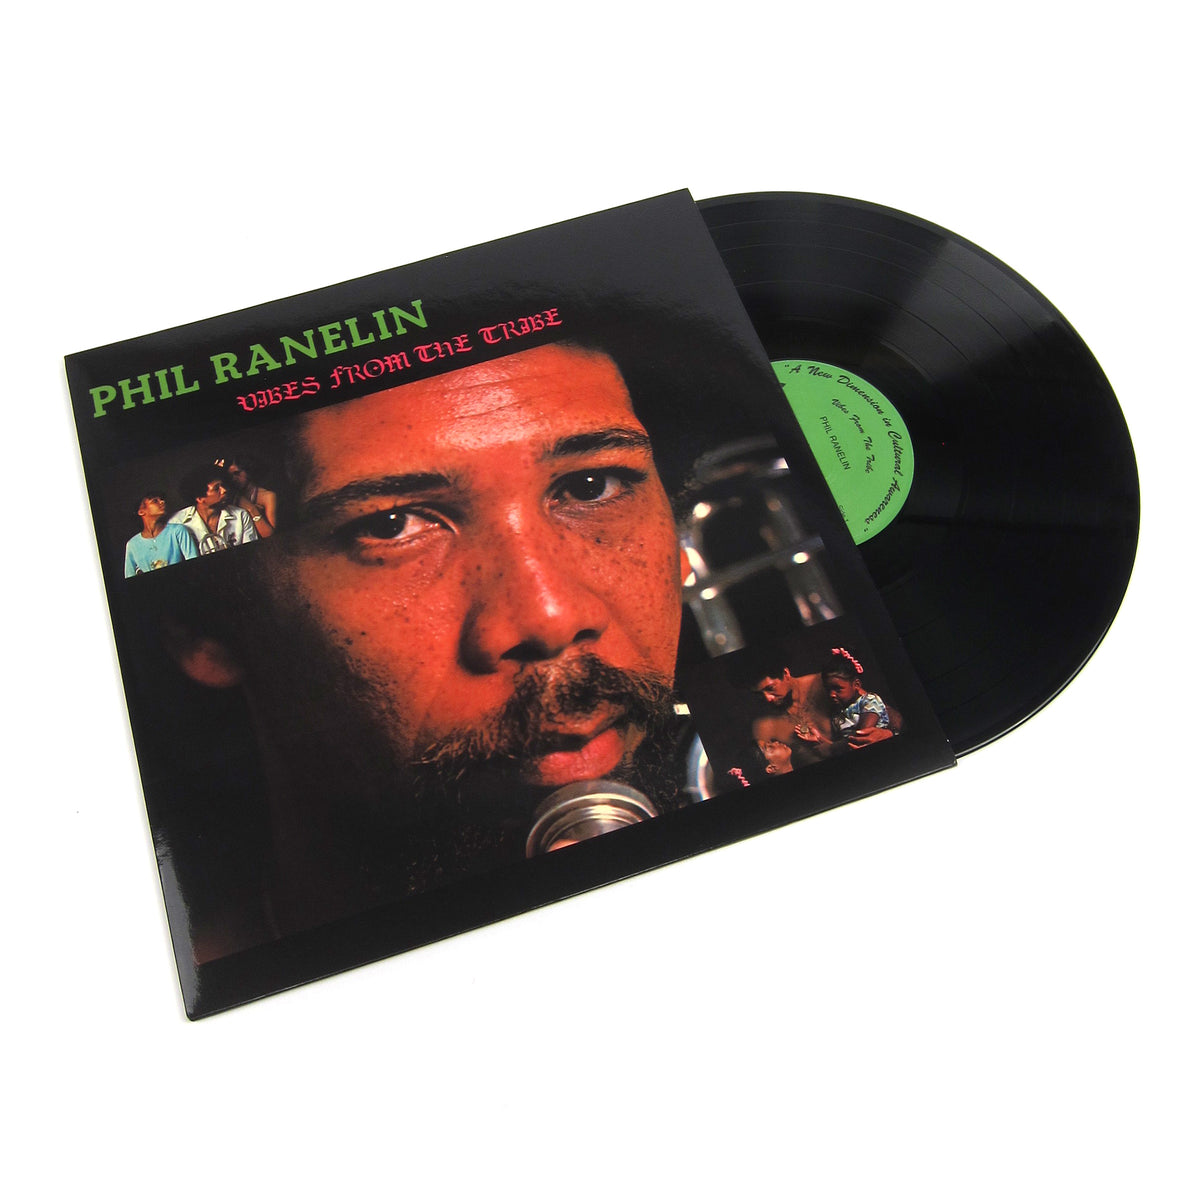 Phillip Ranelin: Vibes From The Tribe (180g) Vinyl LP